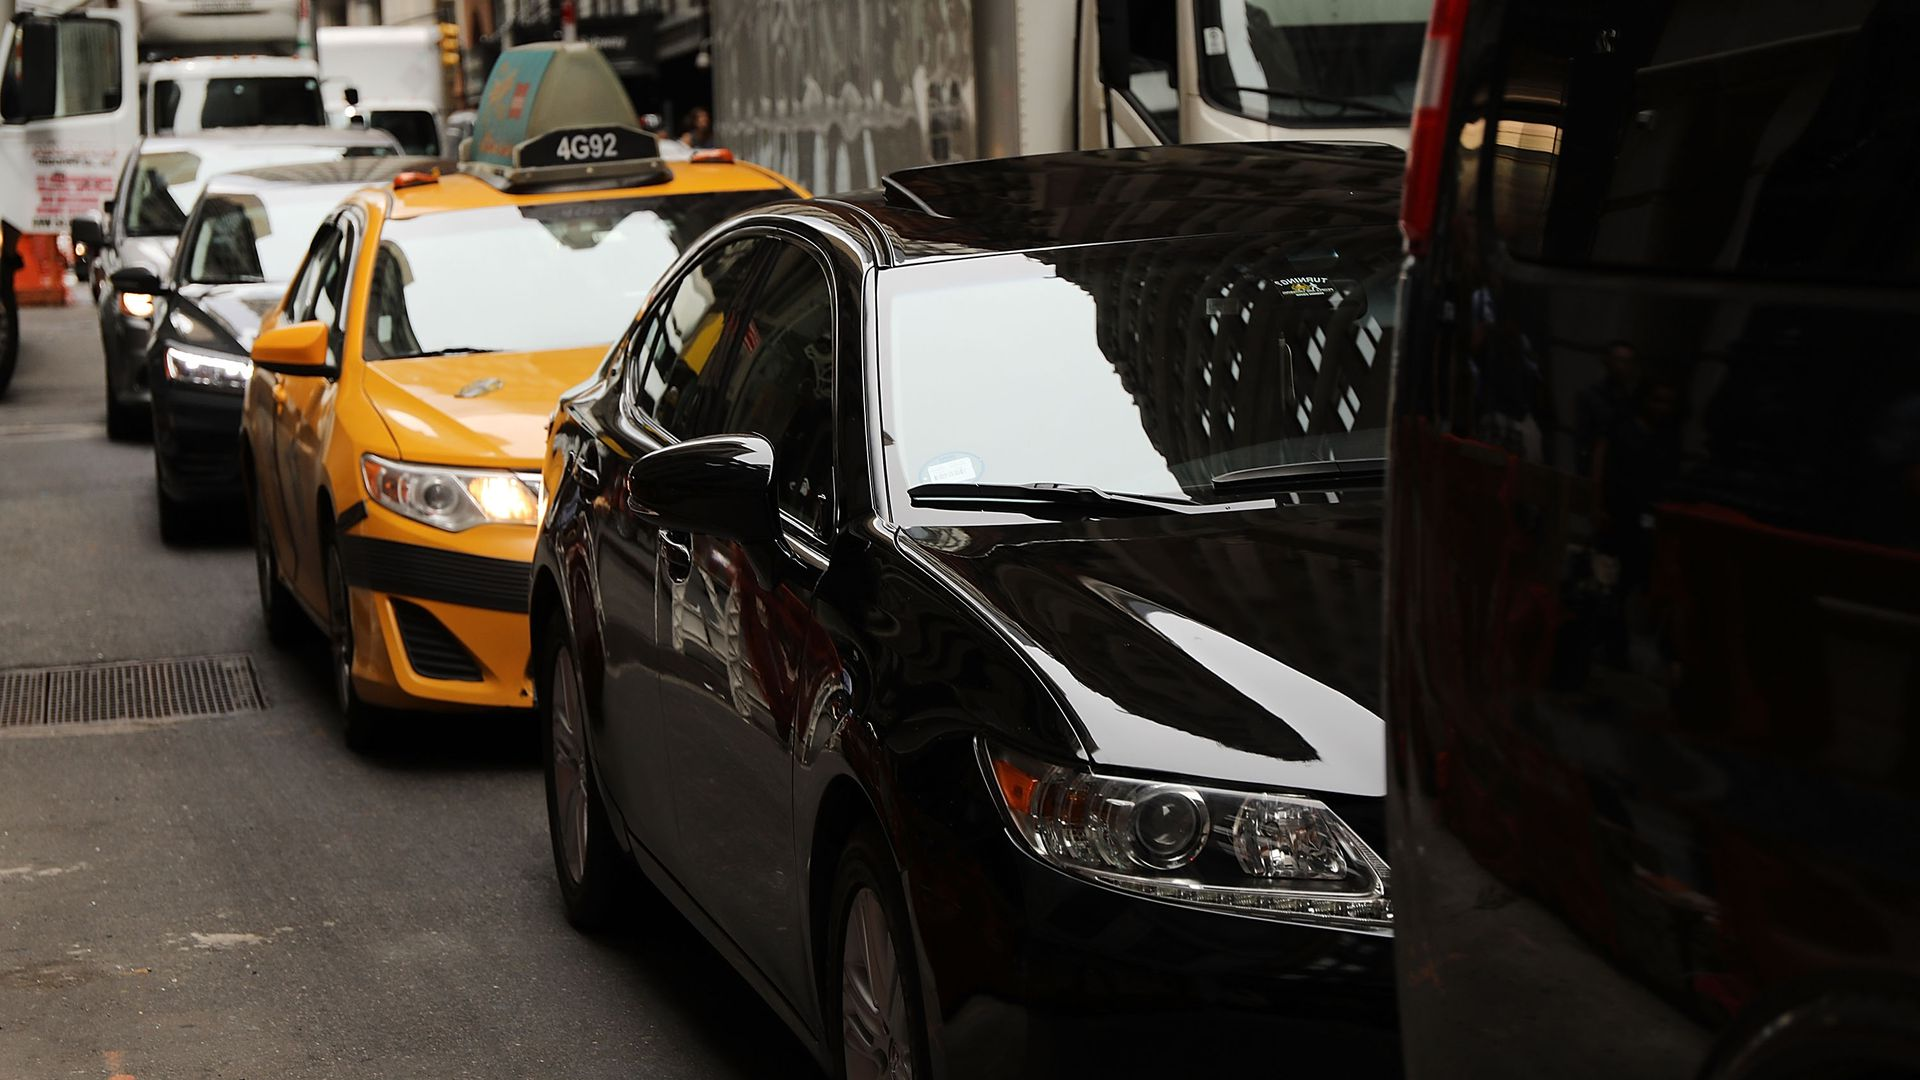 A line of cars and taxis in New York